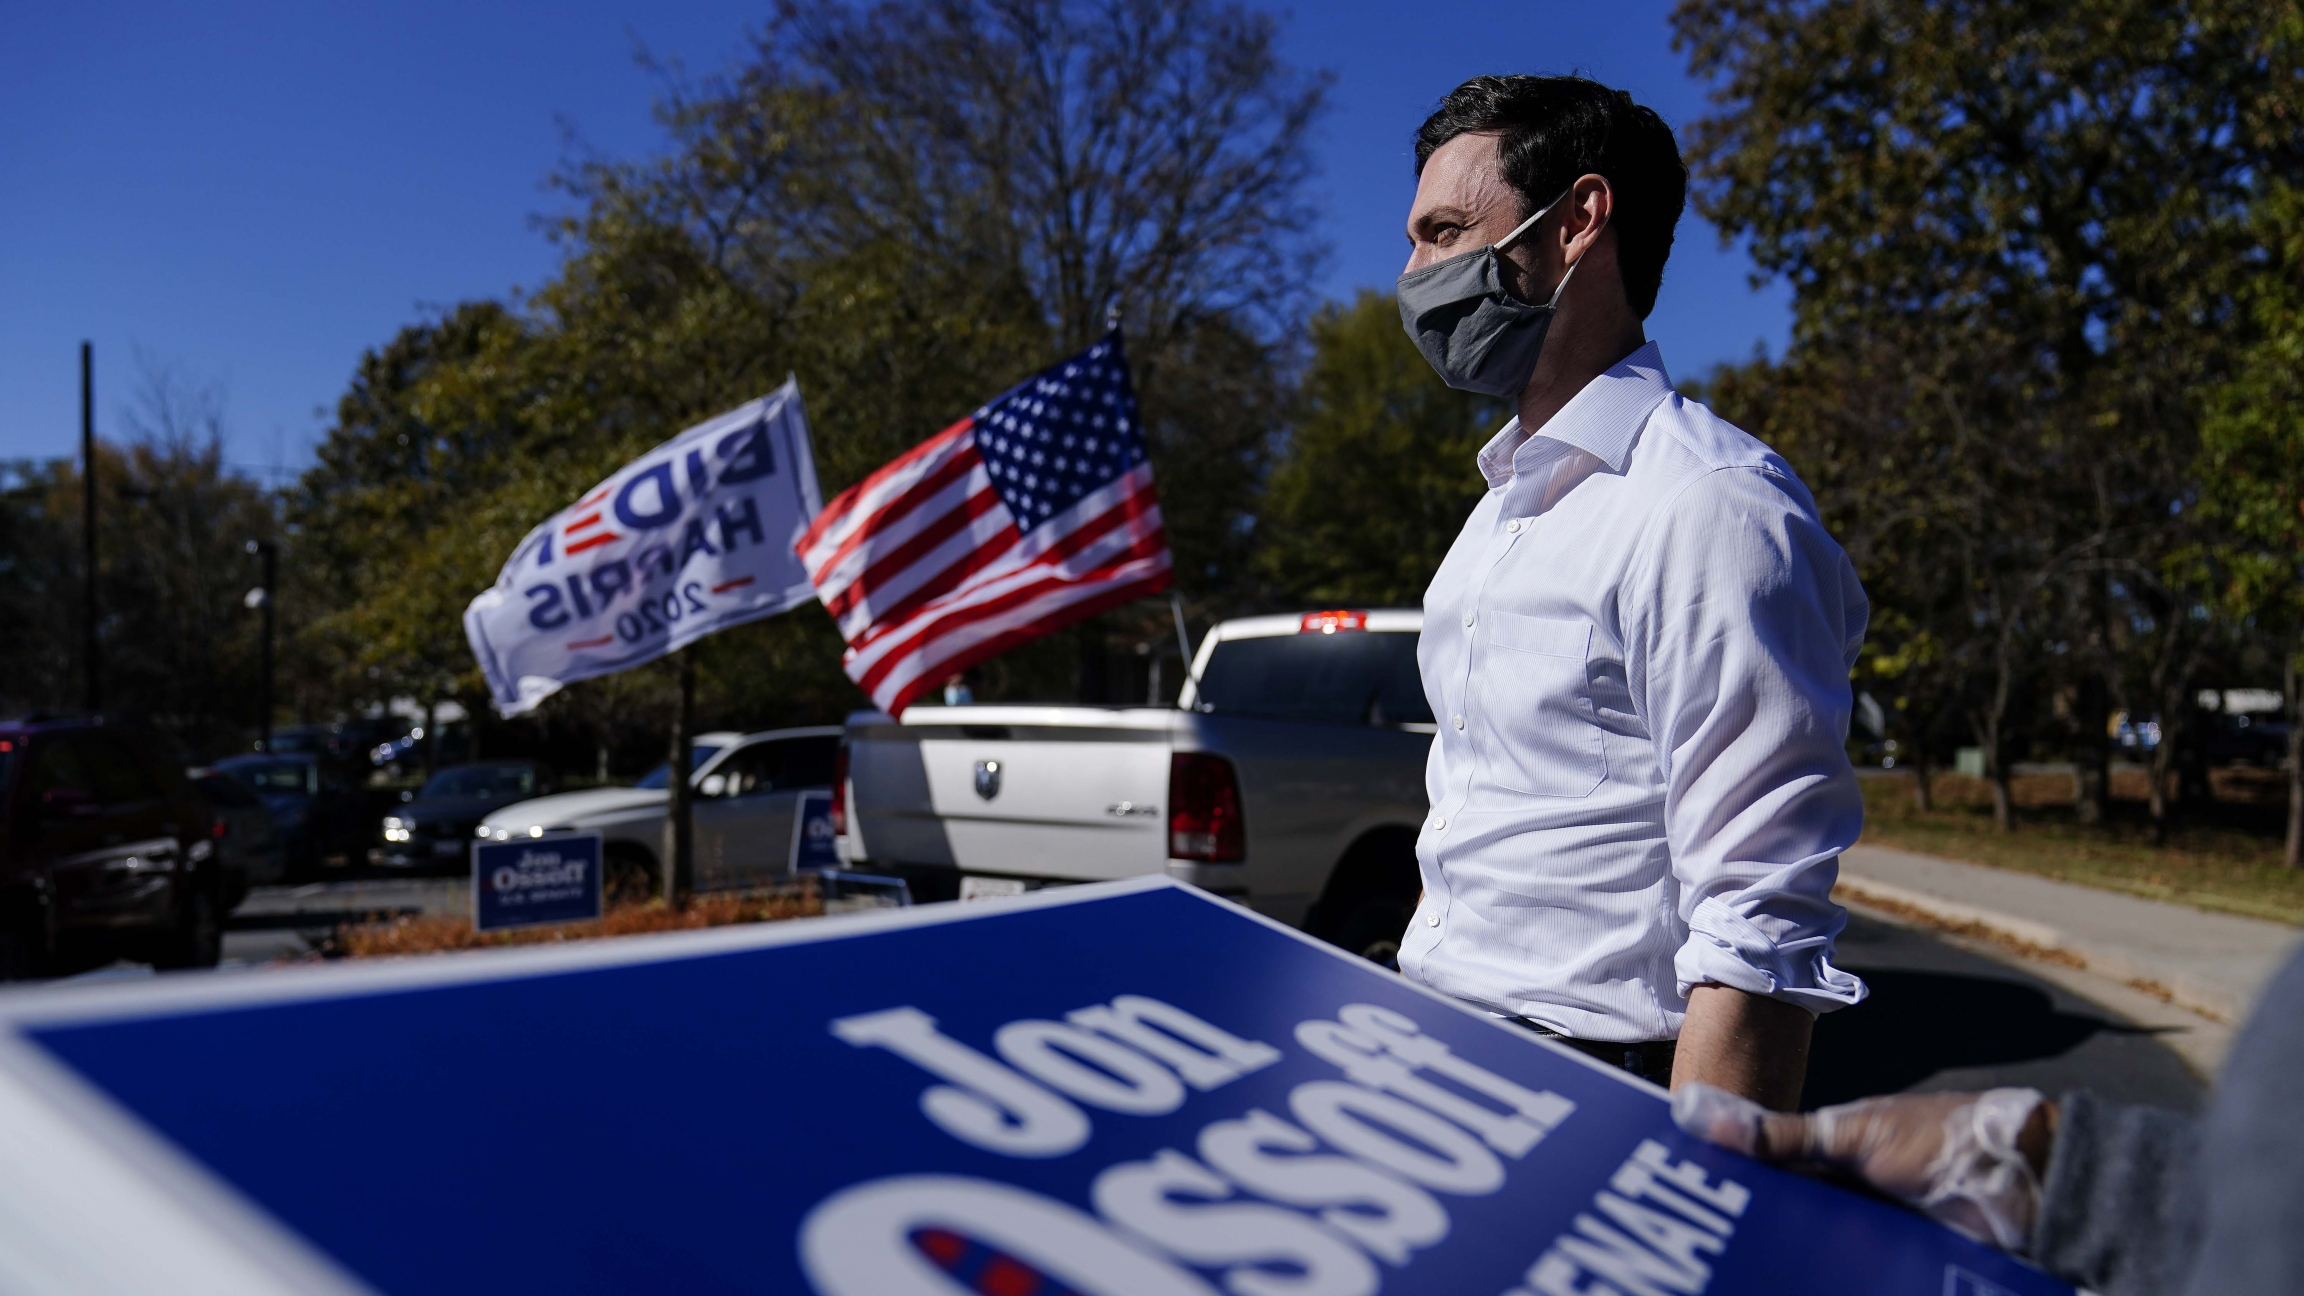 Georgia Democratic candidate for US Senate Jon Ossoff waits for a supporter to arrive during a drive-through yard sign pick-up event on Nov. 18, 2020, in Marietta, Georgia.